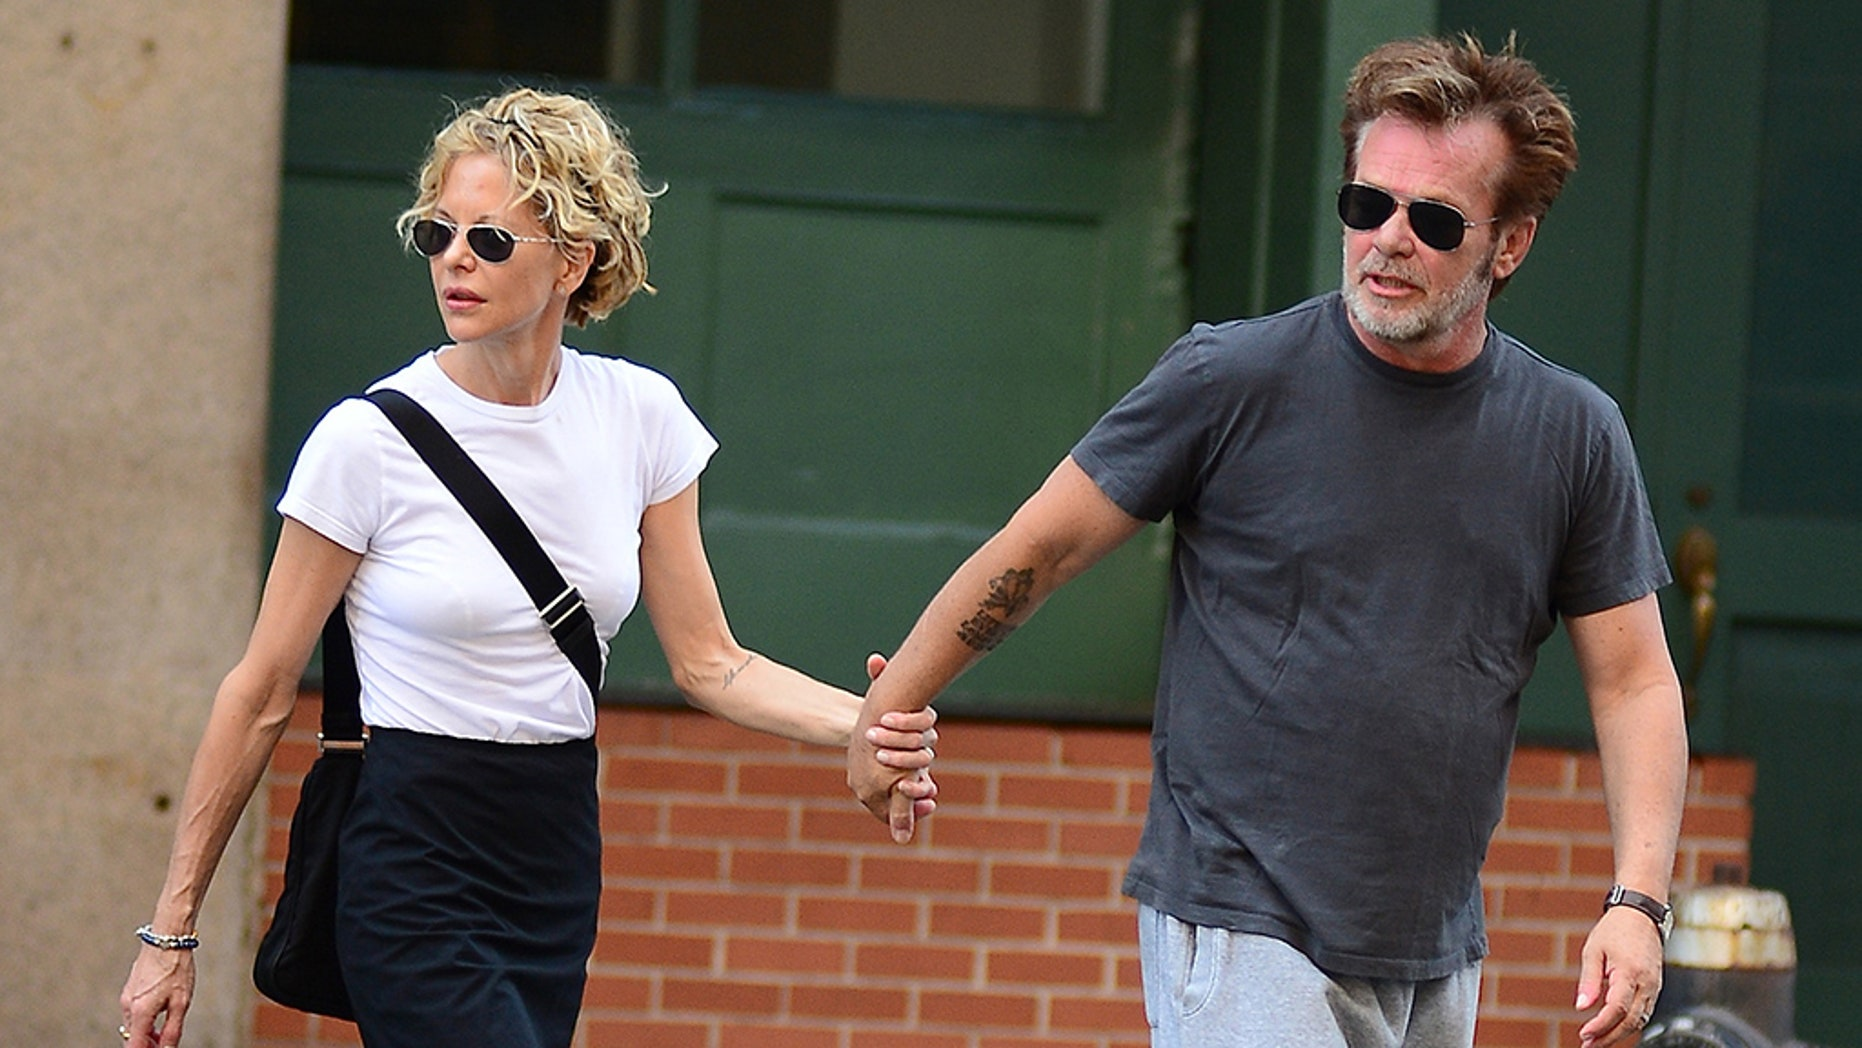 Meg Ryan and John Mellencamp engaged